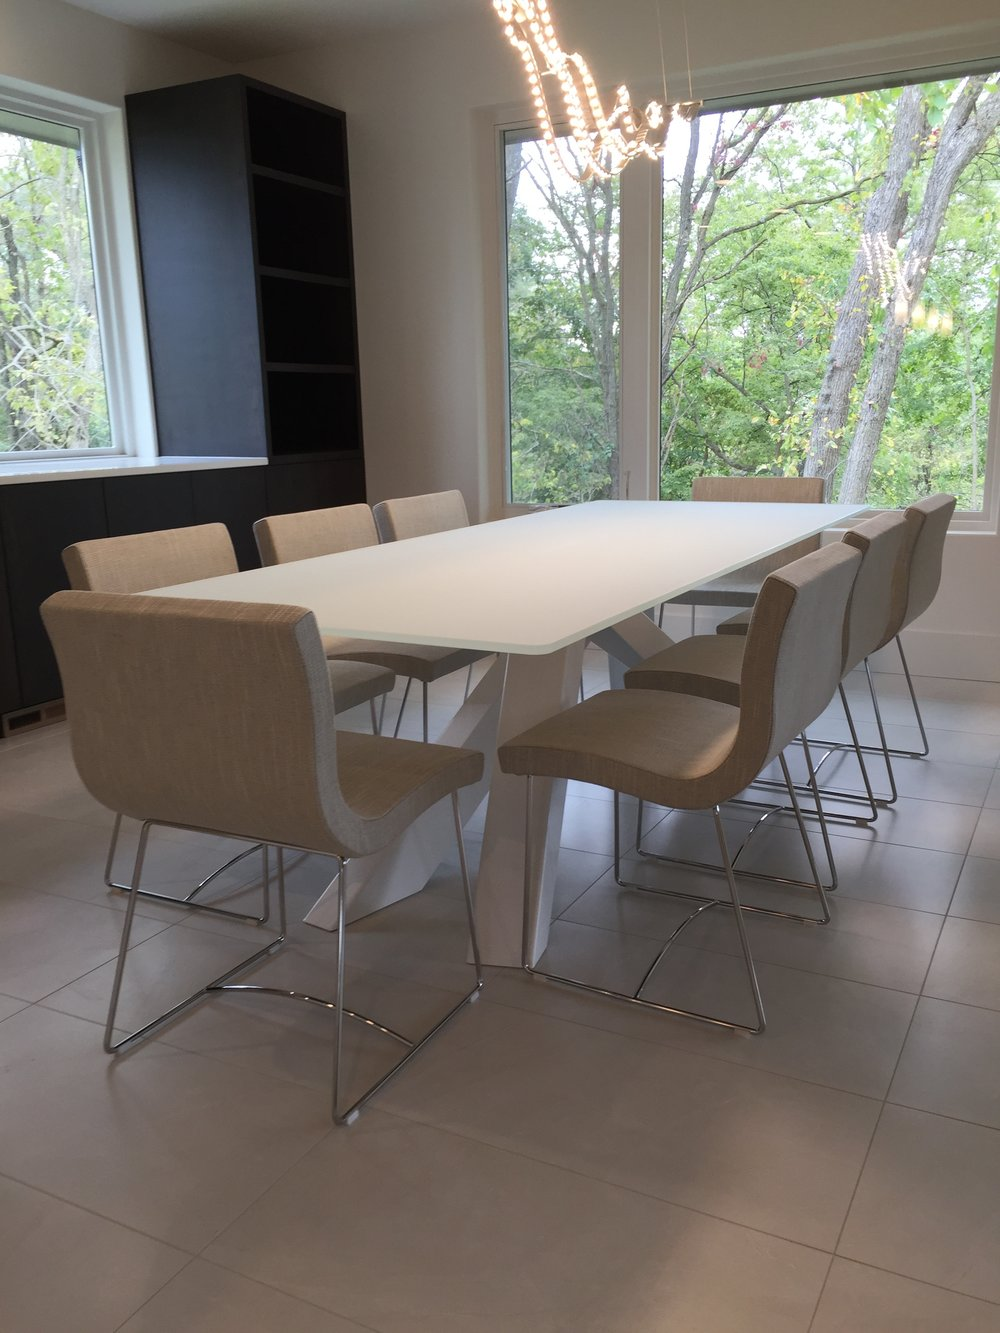 Bonaldo table + Ligne Roset chairs